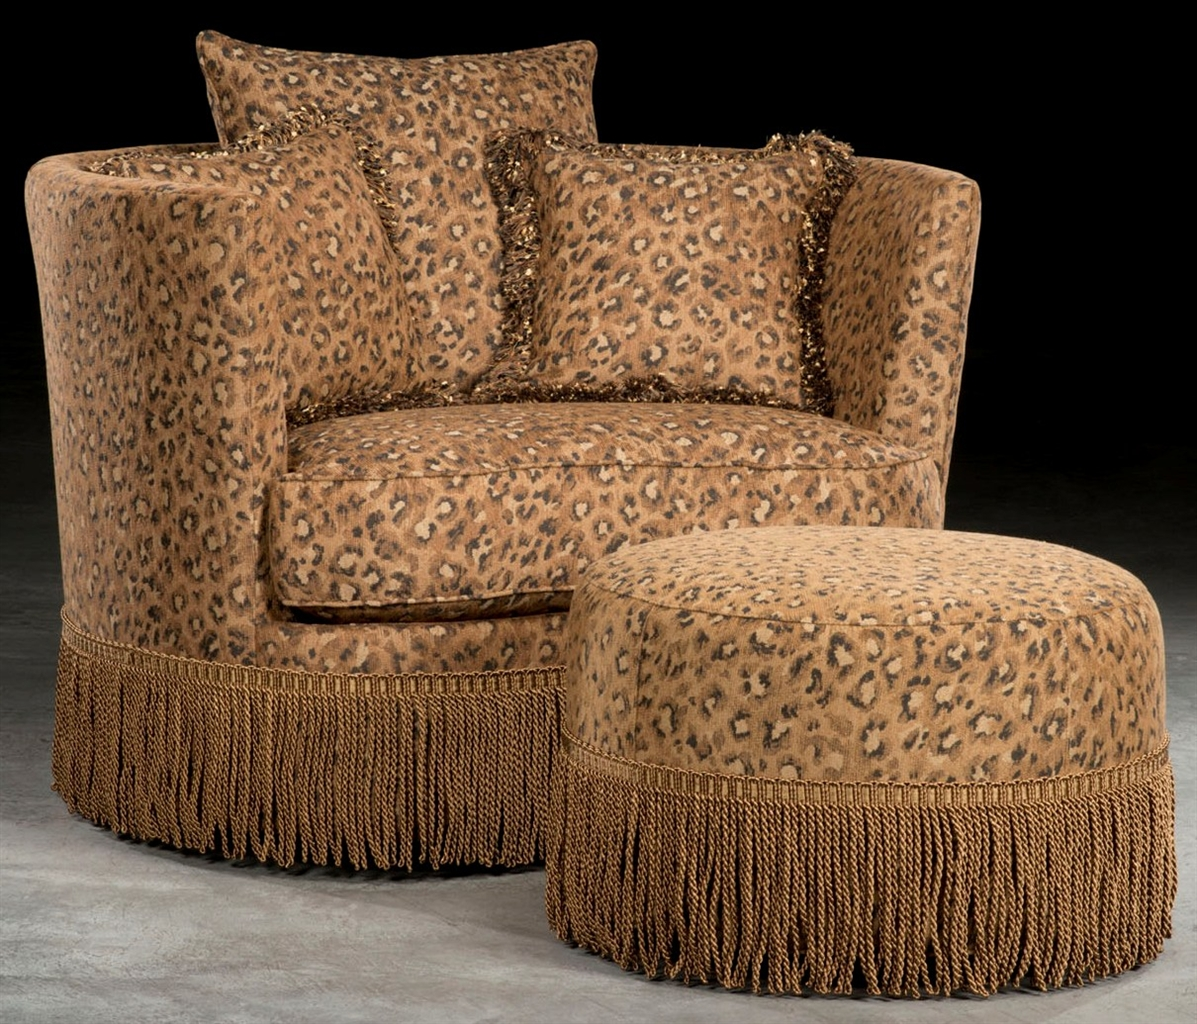 Animal Print Sofas And Chairs Www Redglobalmx Org